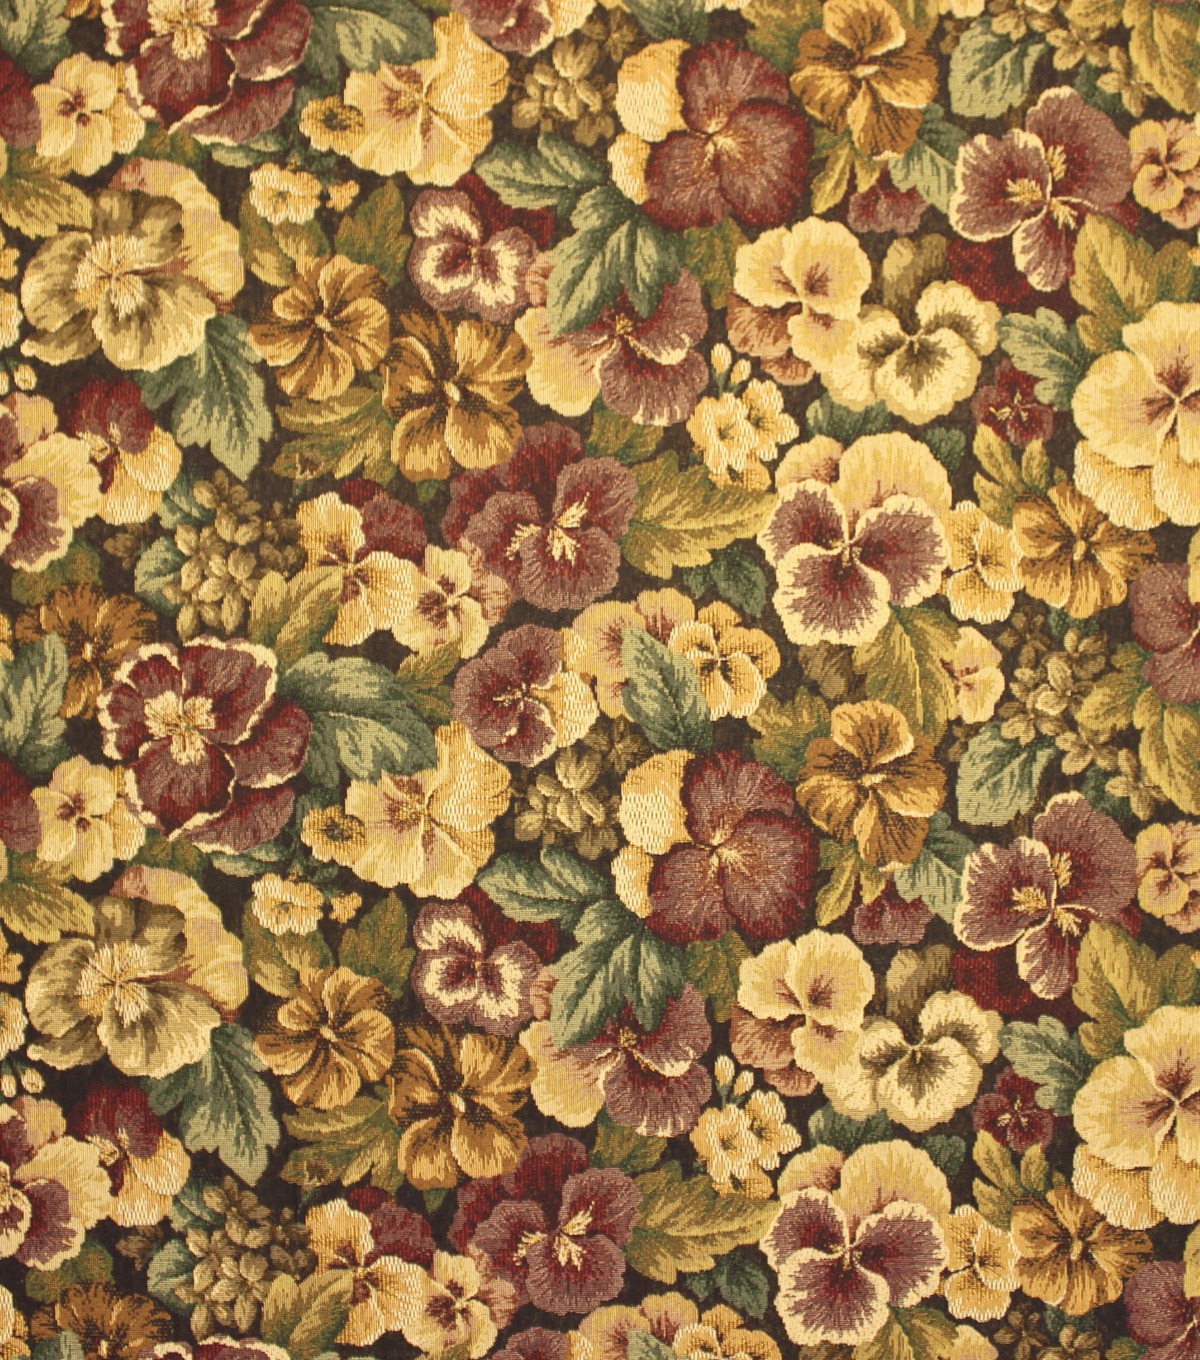 Home Decor 8\u0022x8\u0022 Fabric Swatch-Upholstery Fabric Barrow M5407-5518 Mulberry